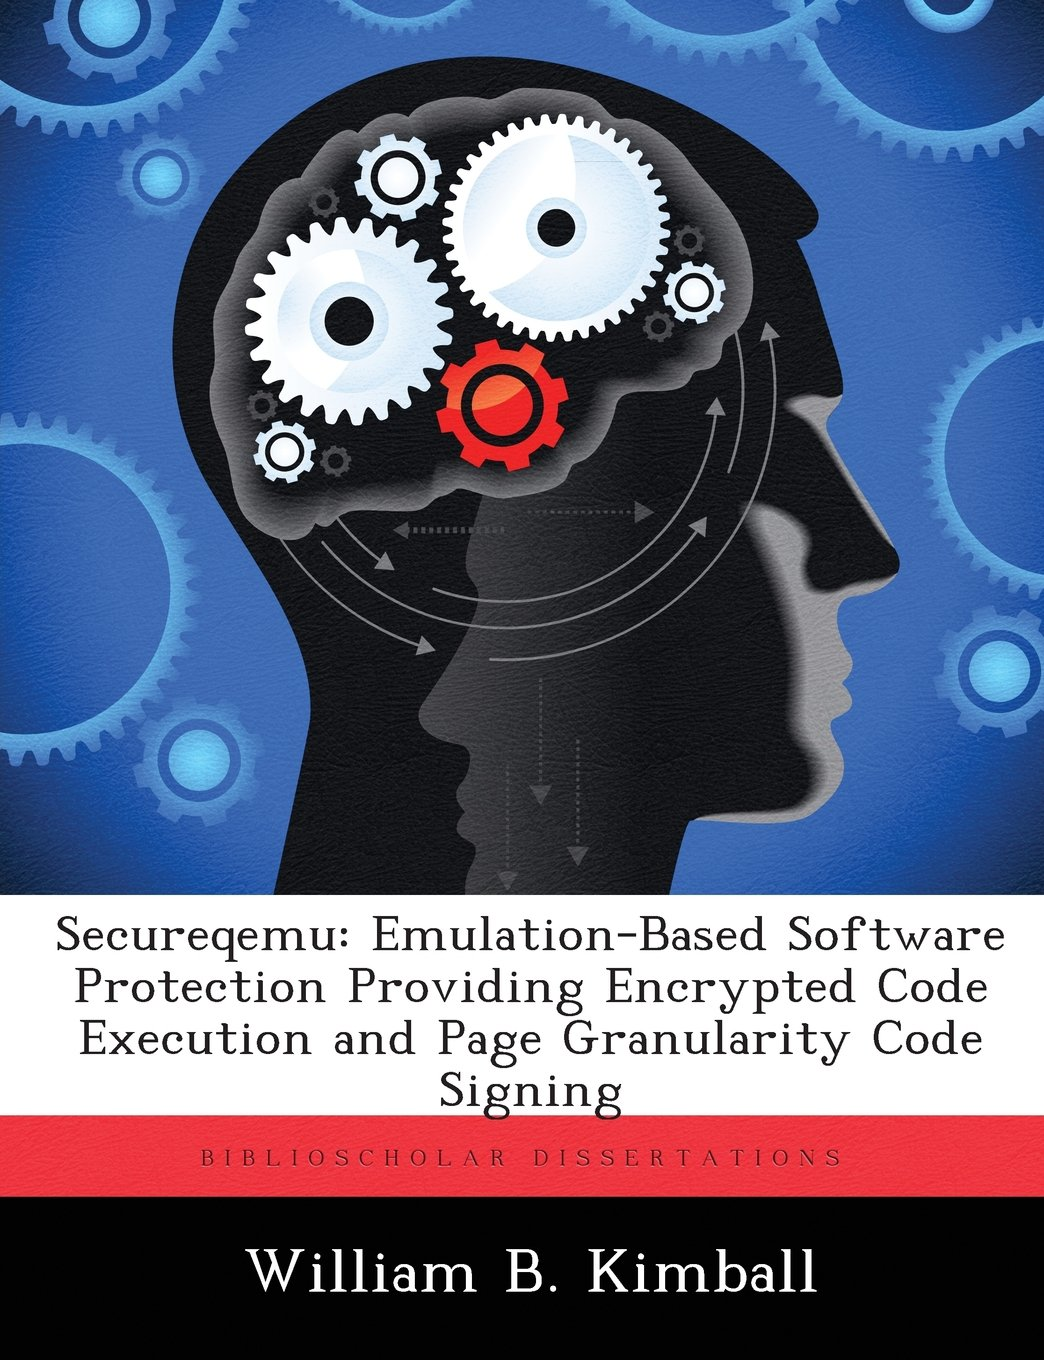 Download Secureqemu: Emulation-Based Software Protection Providing Encrypted Code Execution and Page Granularity Code Signing ePub fb2 ebook